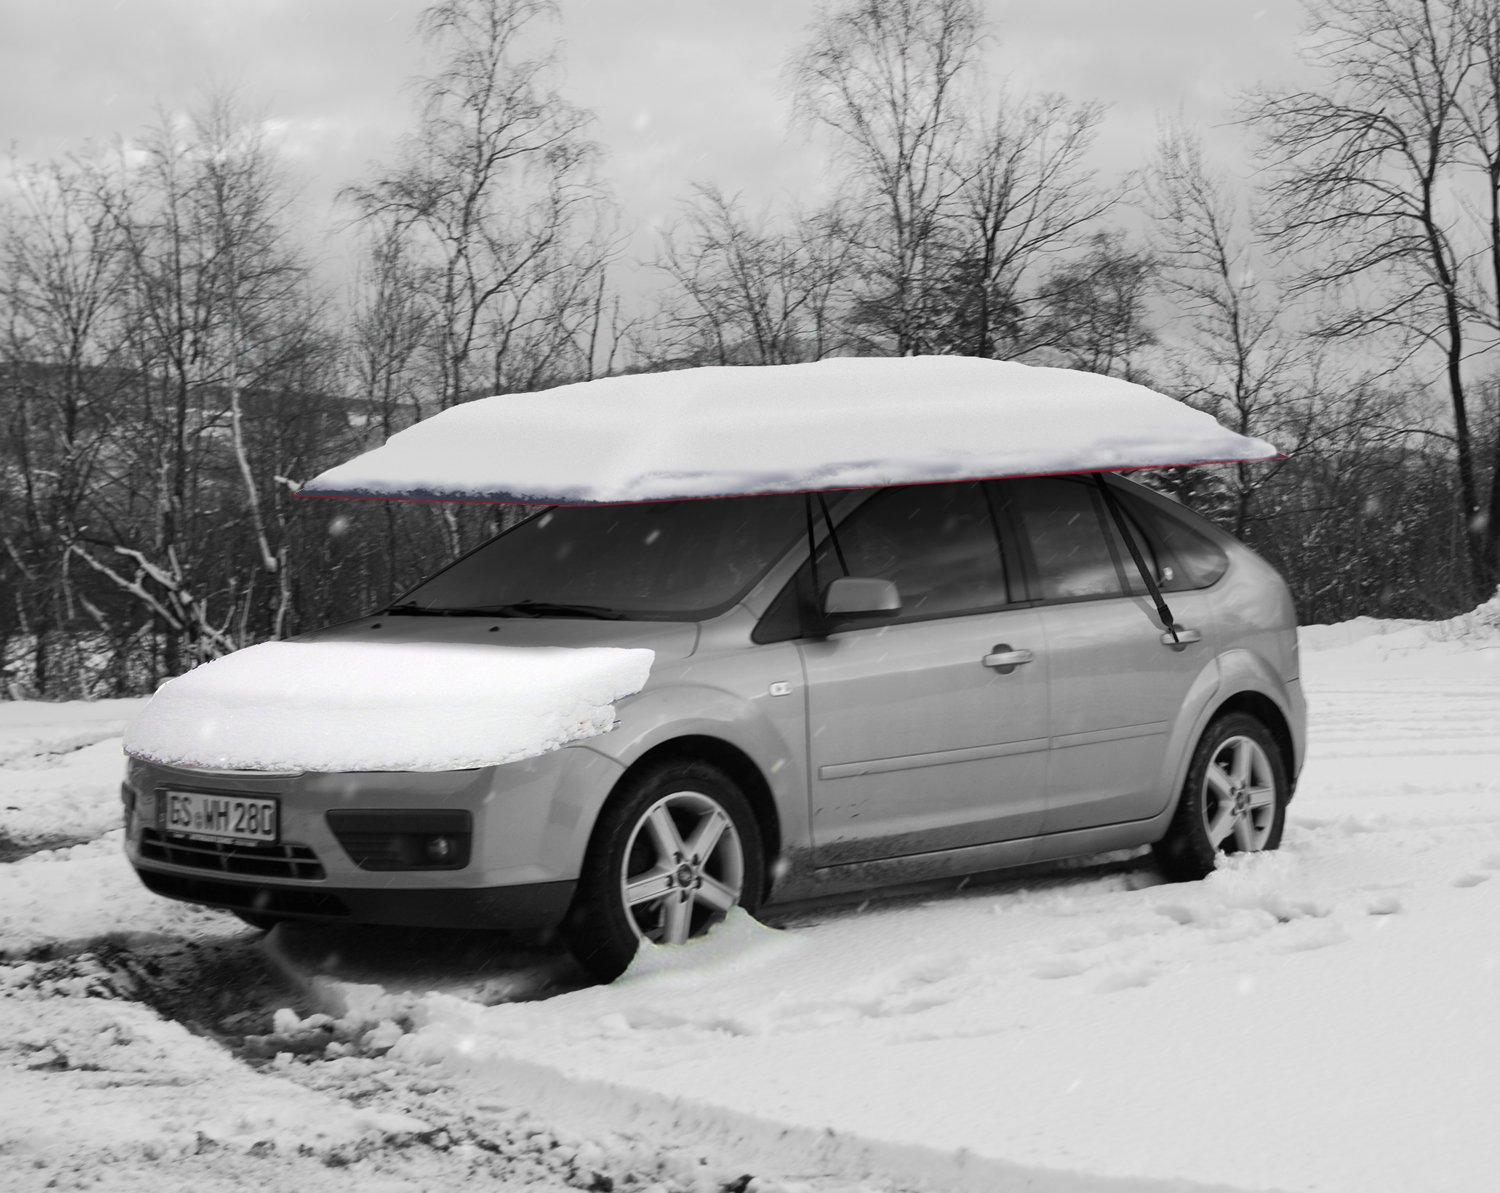 LANMODO Car Tent, Also Can be Popup Tent, Beach Tent with Anti-UV, Water-Resistant, Proof Wind, Snow, Storm, Falling Objects Features, Fit to All Cars (with STAND)